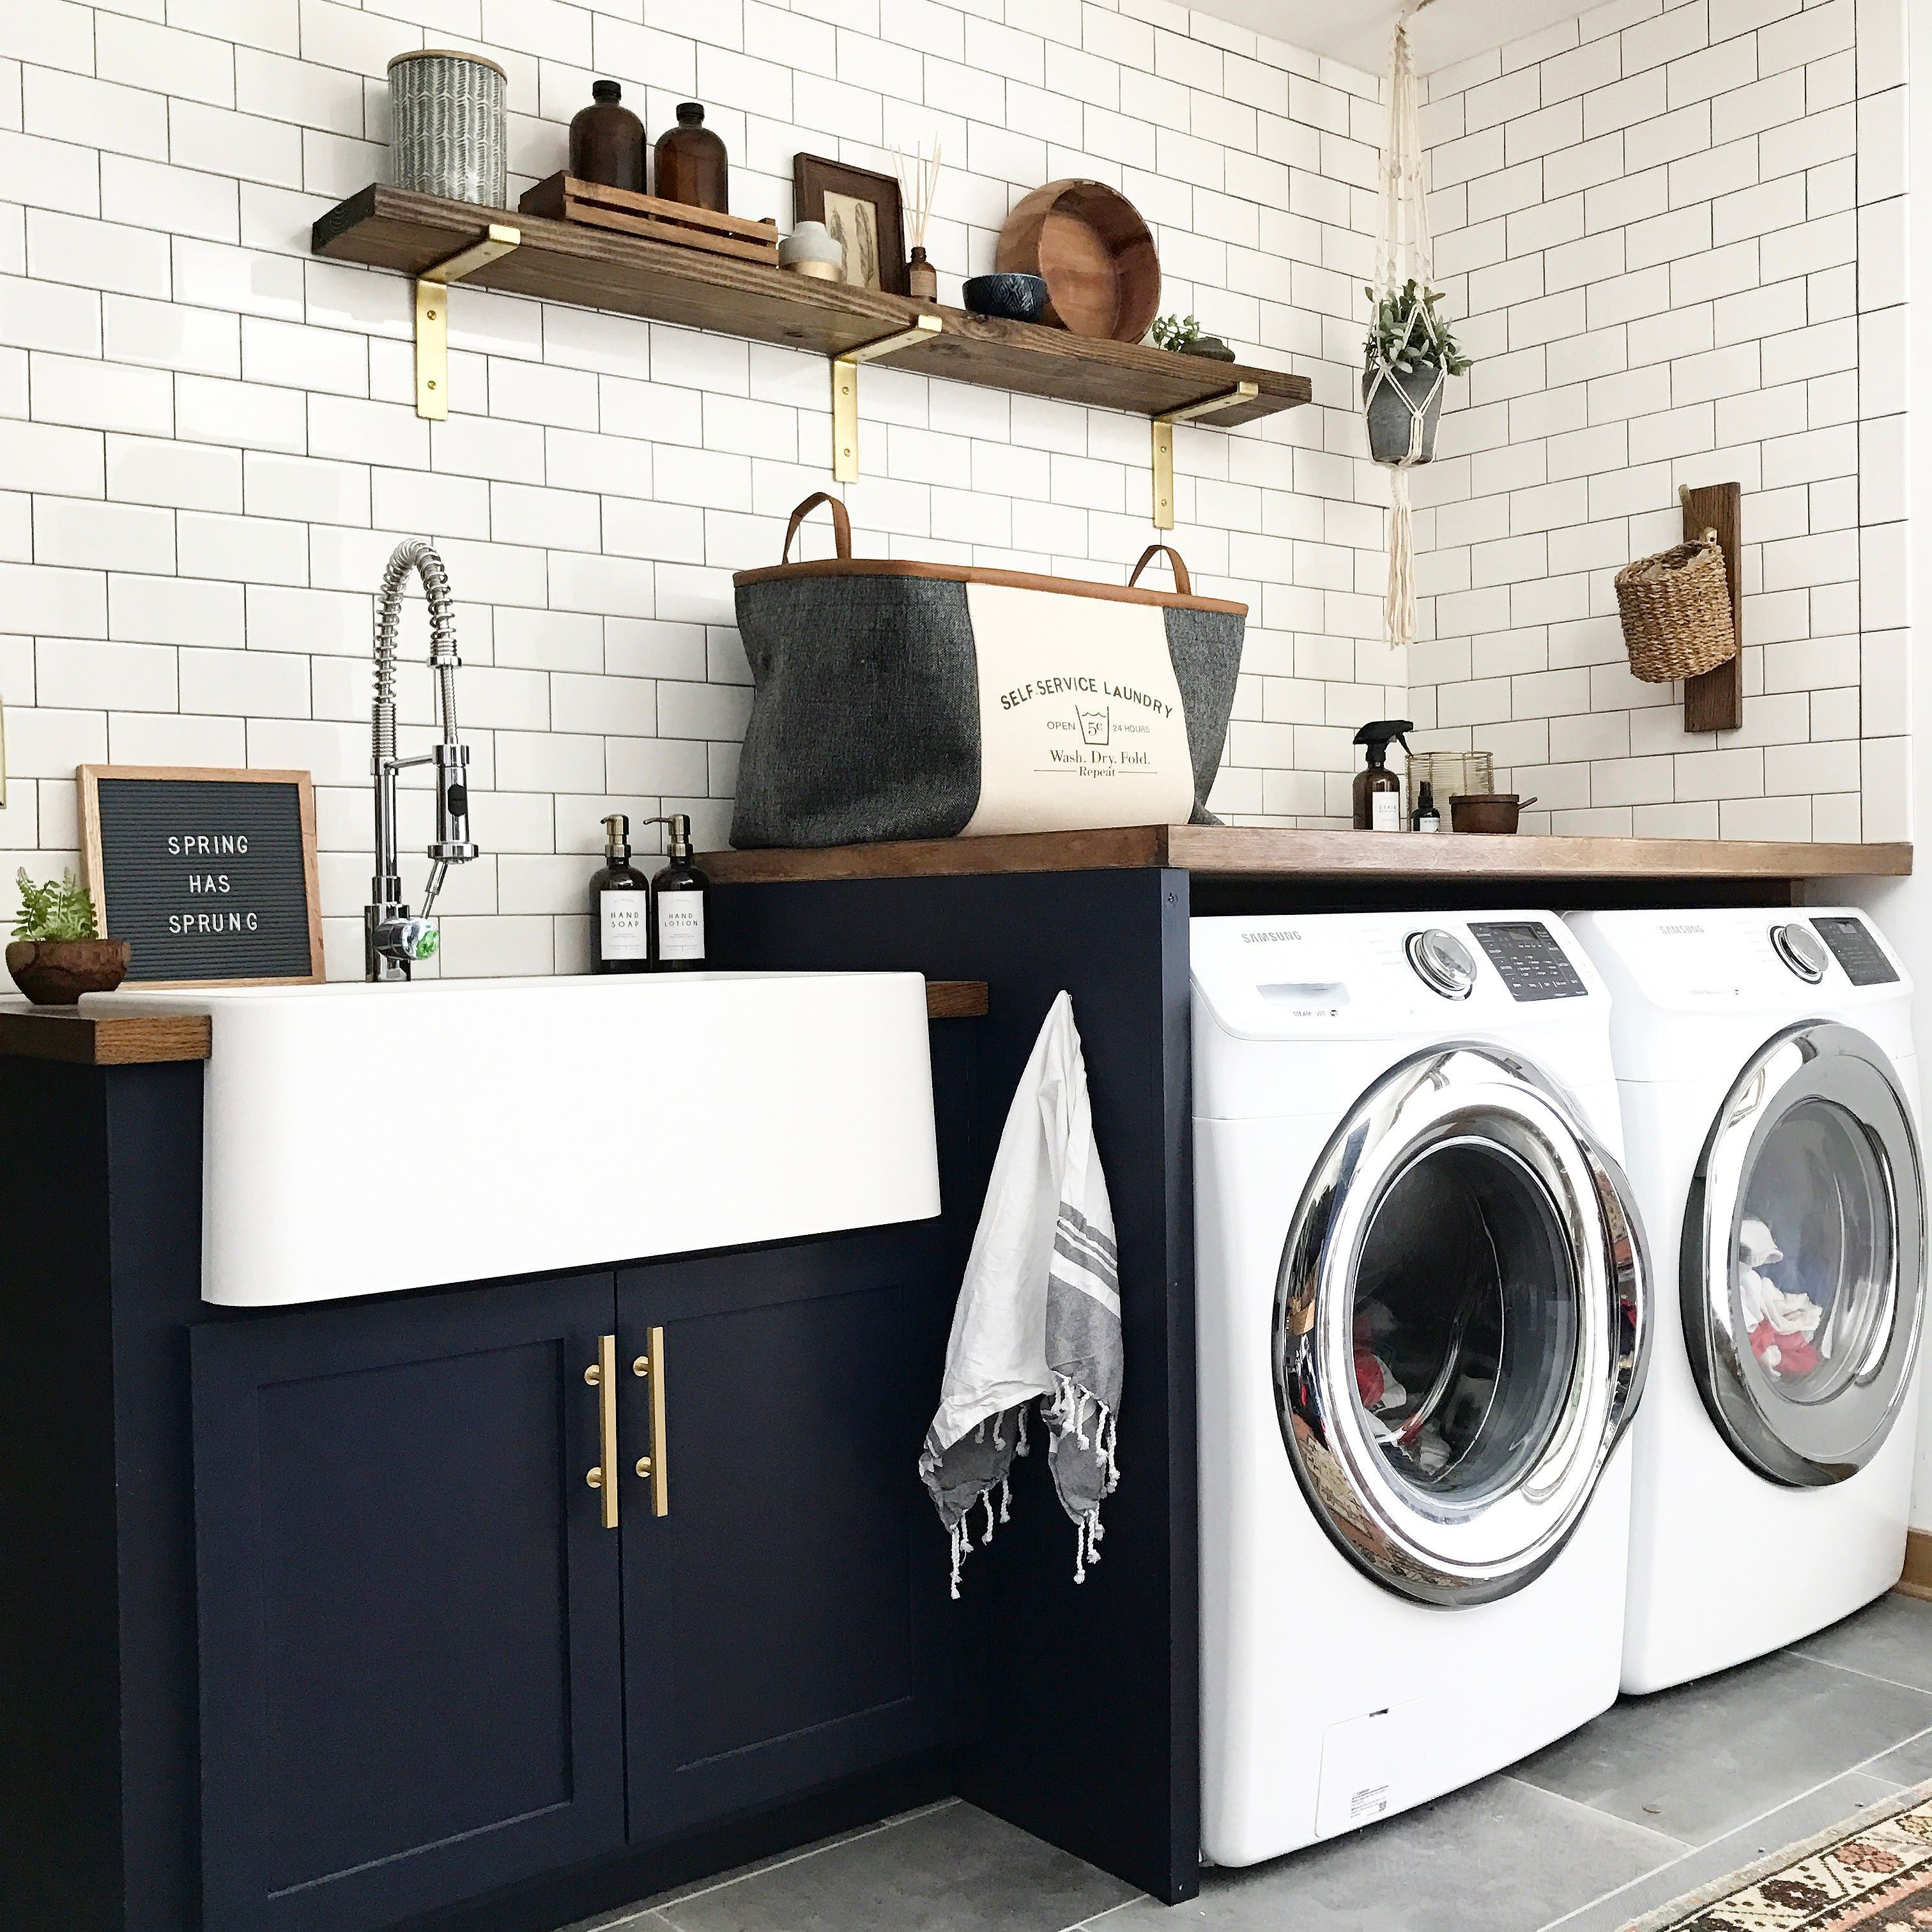 Navy Cabinets Gold Hardware And Bracketsm Wood Shelves And